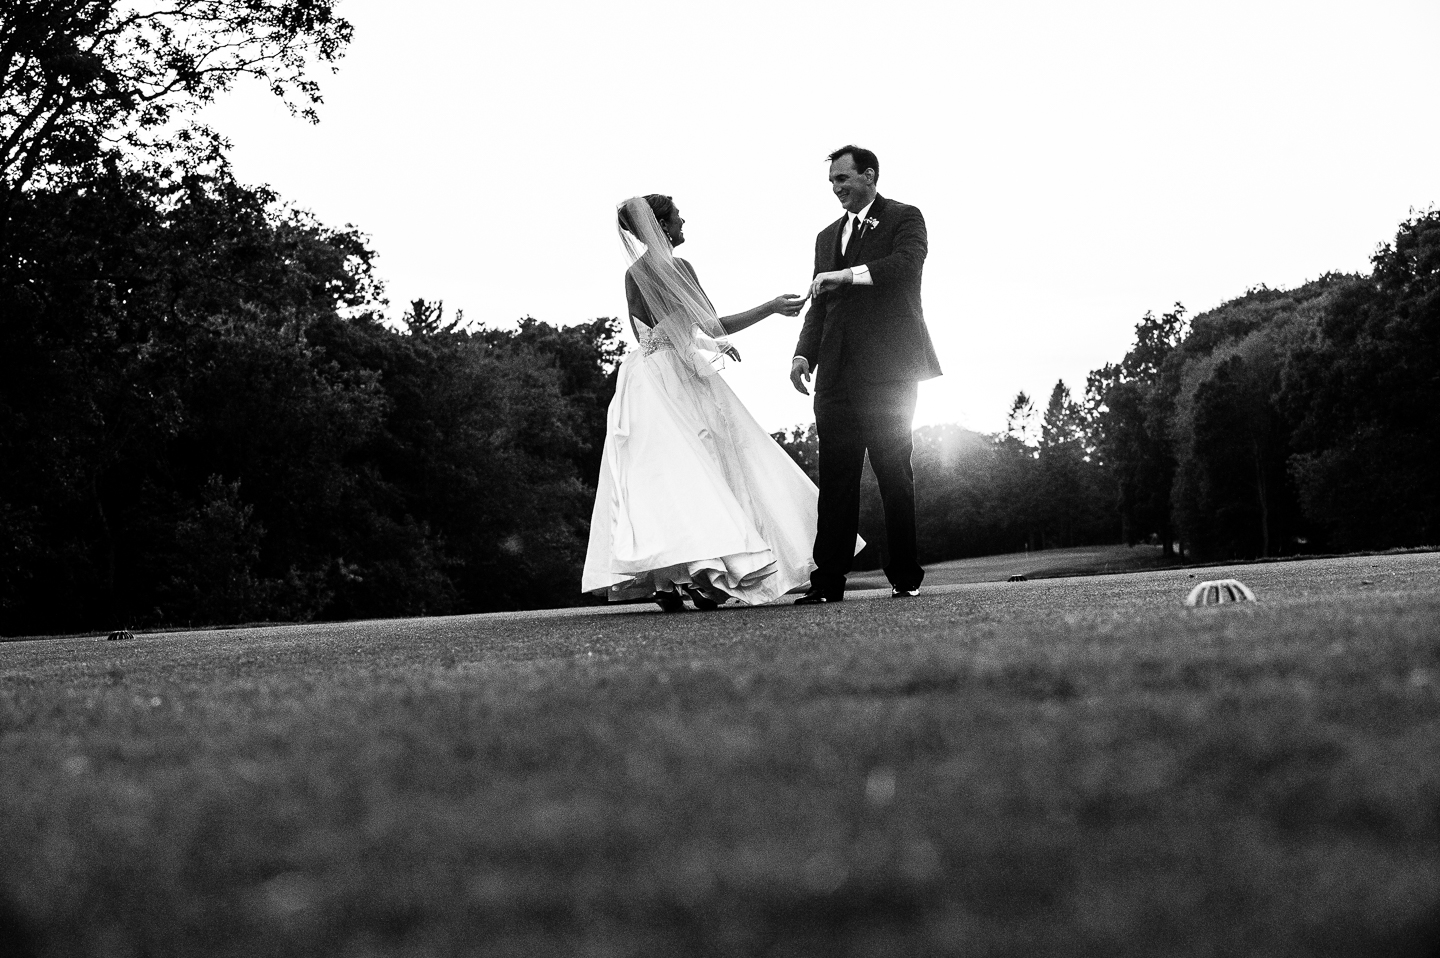 a bride and groom practice their first dance in a field